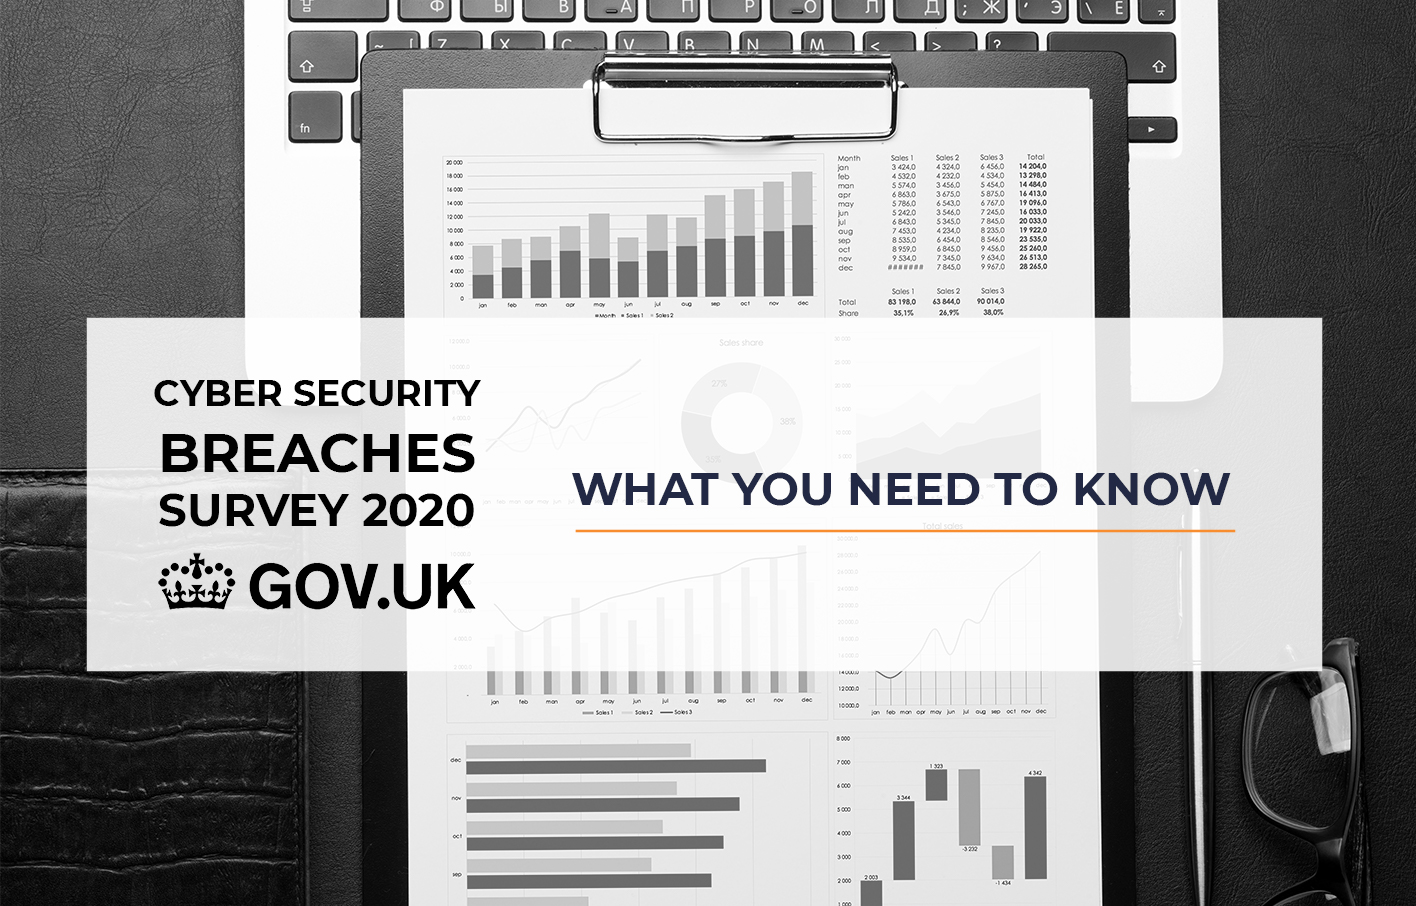 UK Government Cyber Security Breaches Survey 2020